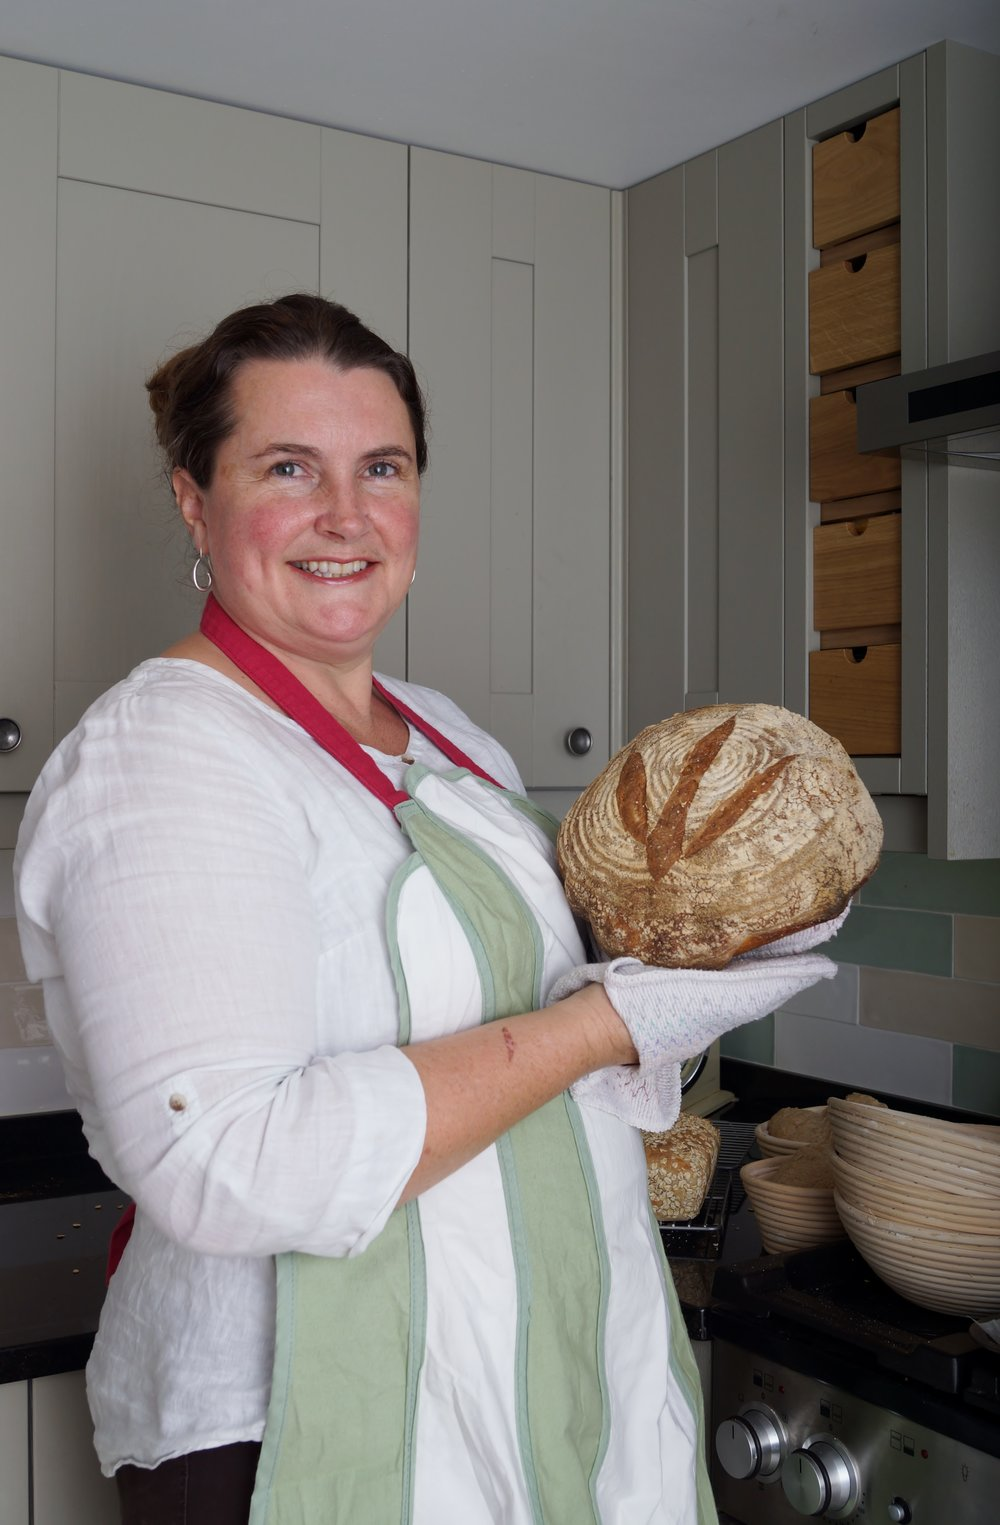 Copy of Sara Sourdough.JPG